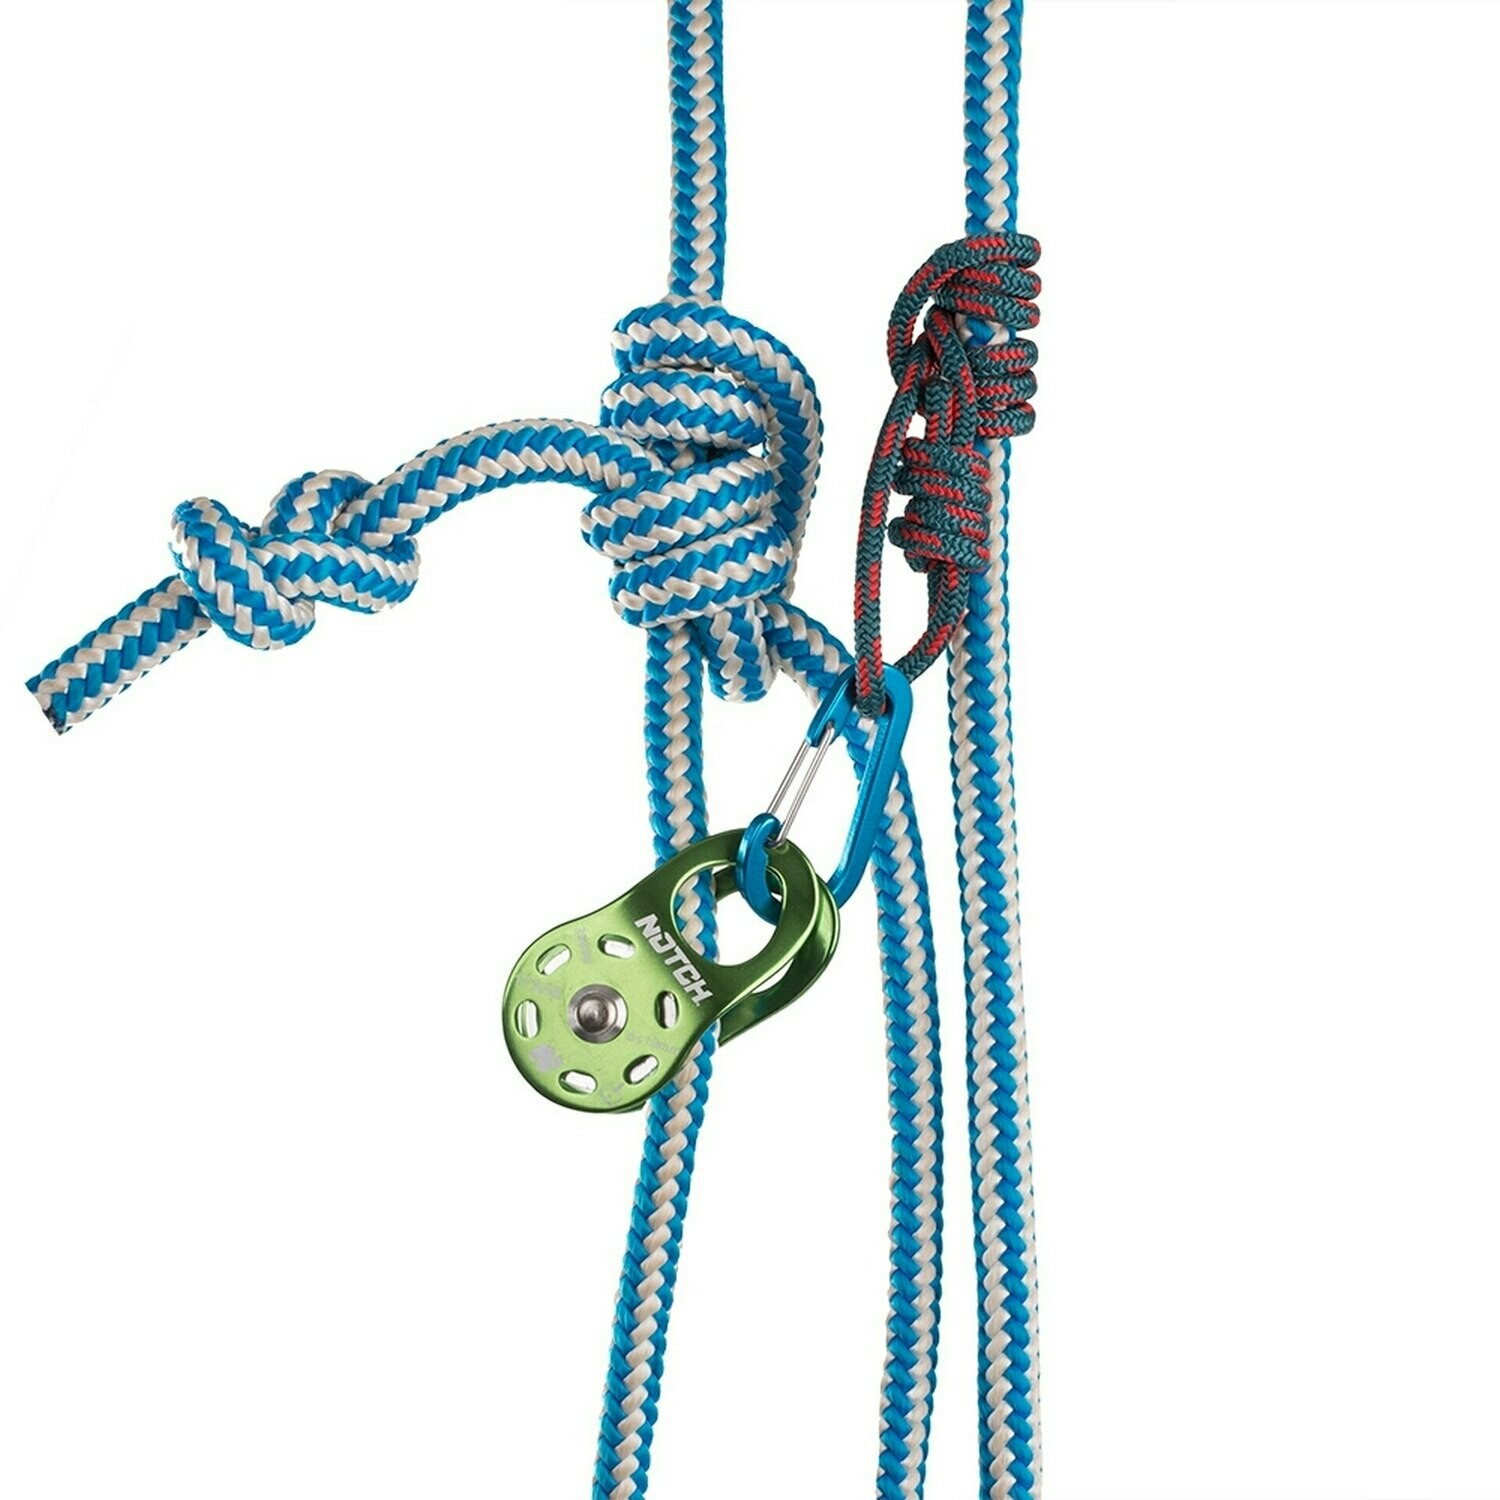 Notch Micro Pulley Combo